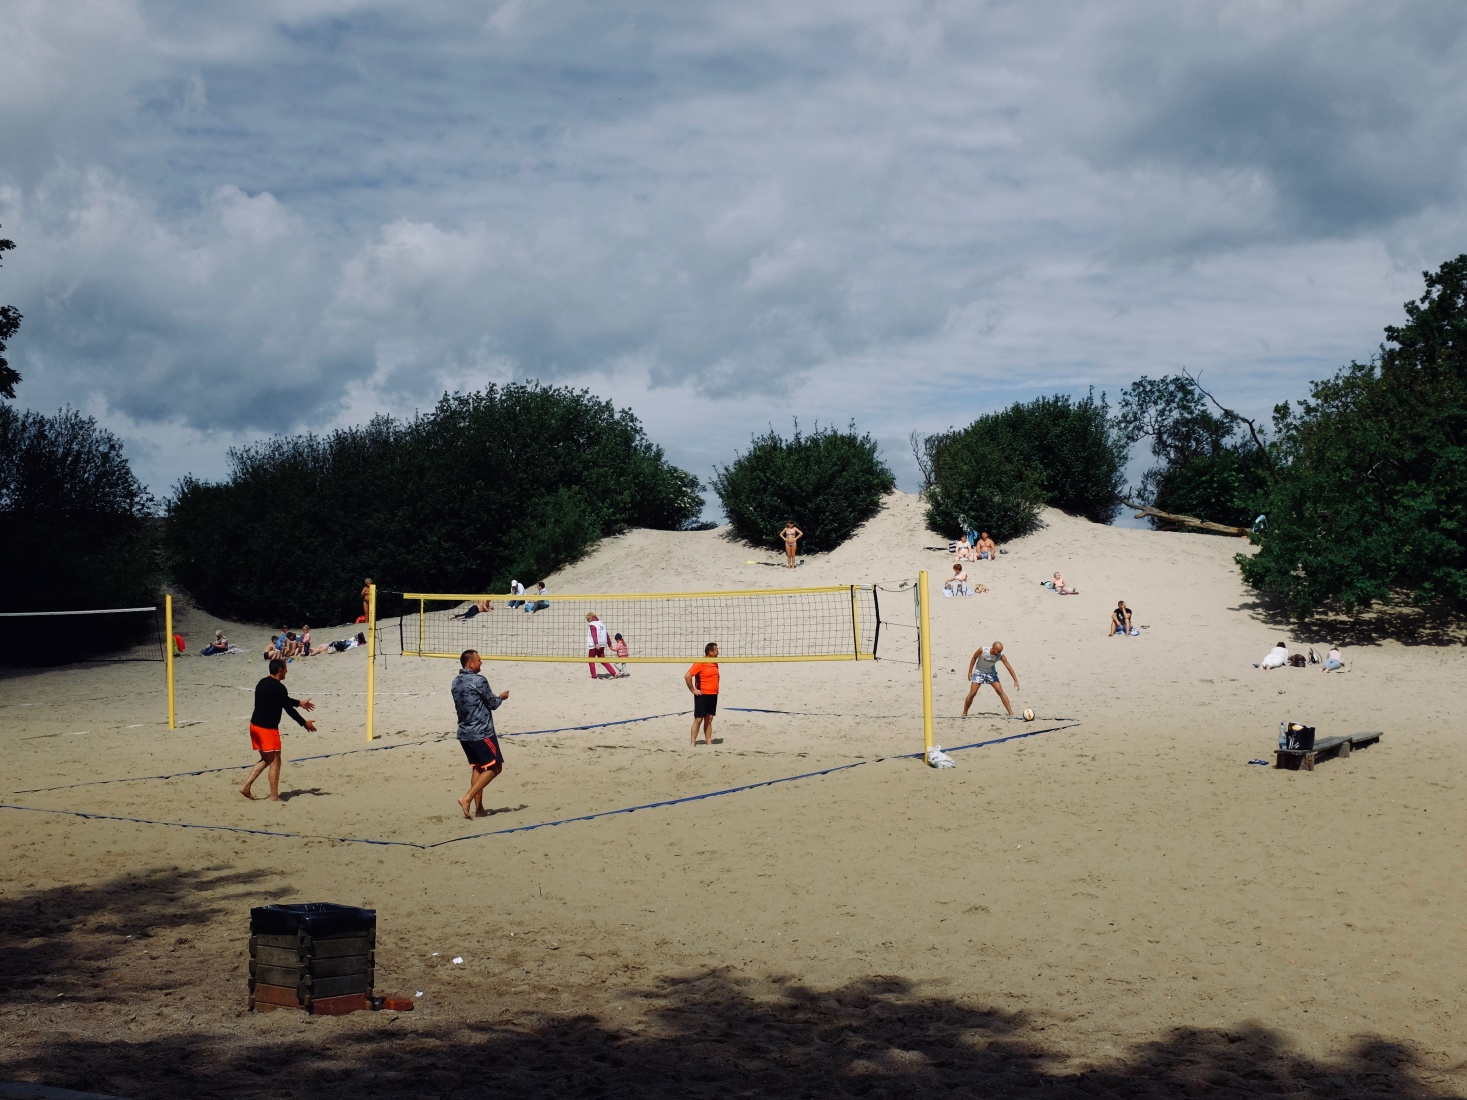 Locals playing volleyball in a park on a sand dune in Zelenogradsk, near Kaliningrad, Russia.